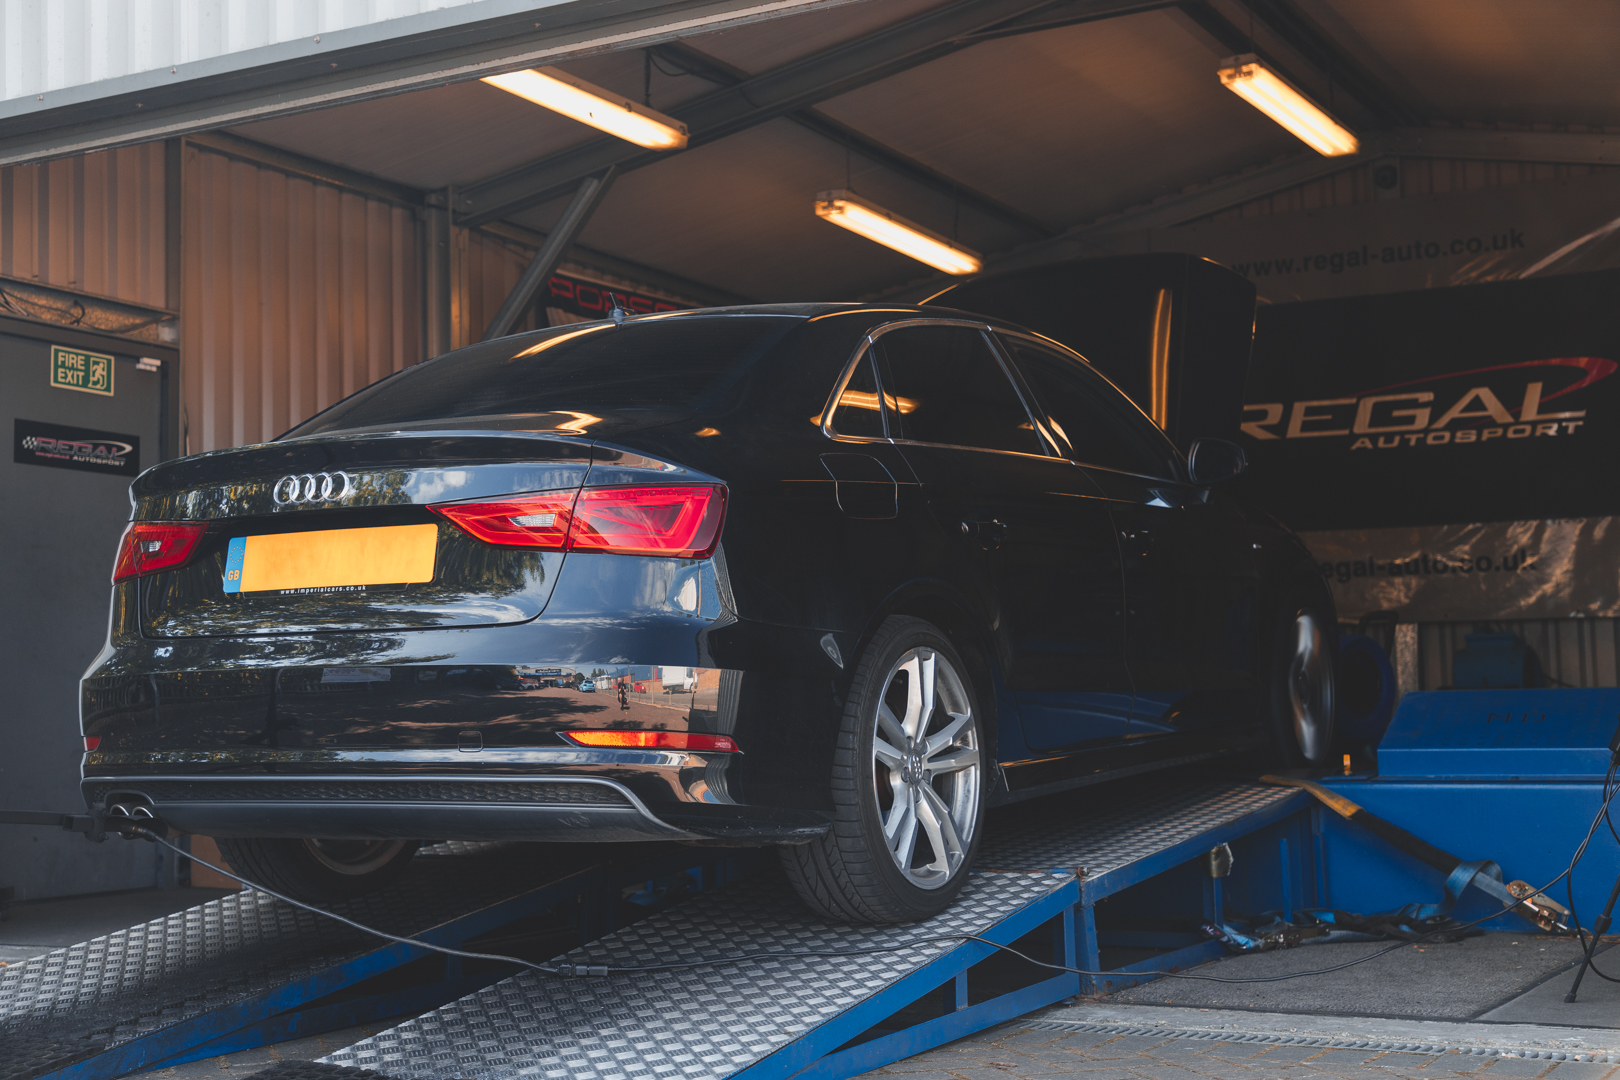 A3 1 8TFSi Packs a Punch with APR Stage 1 ECU Remap